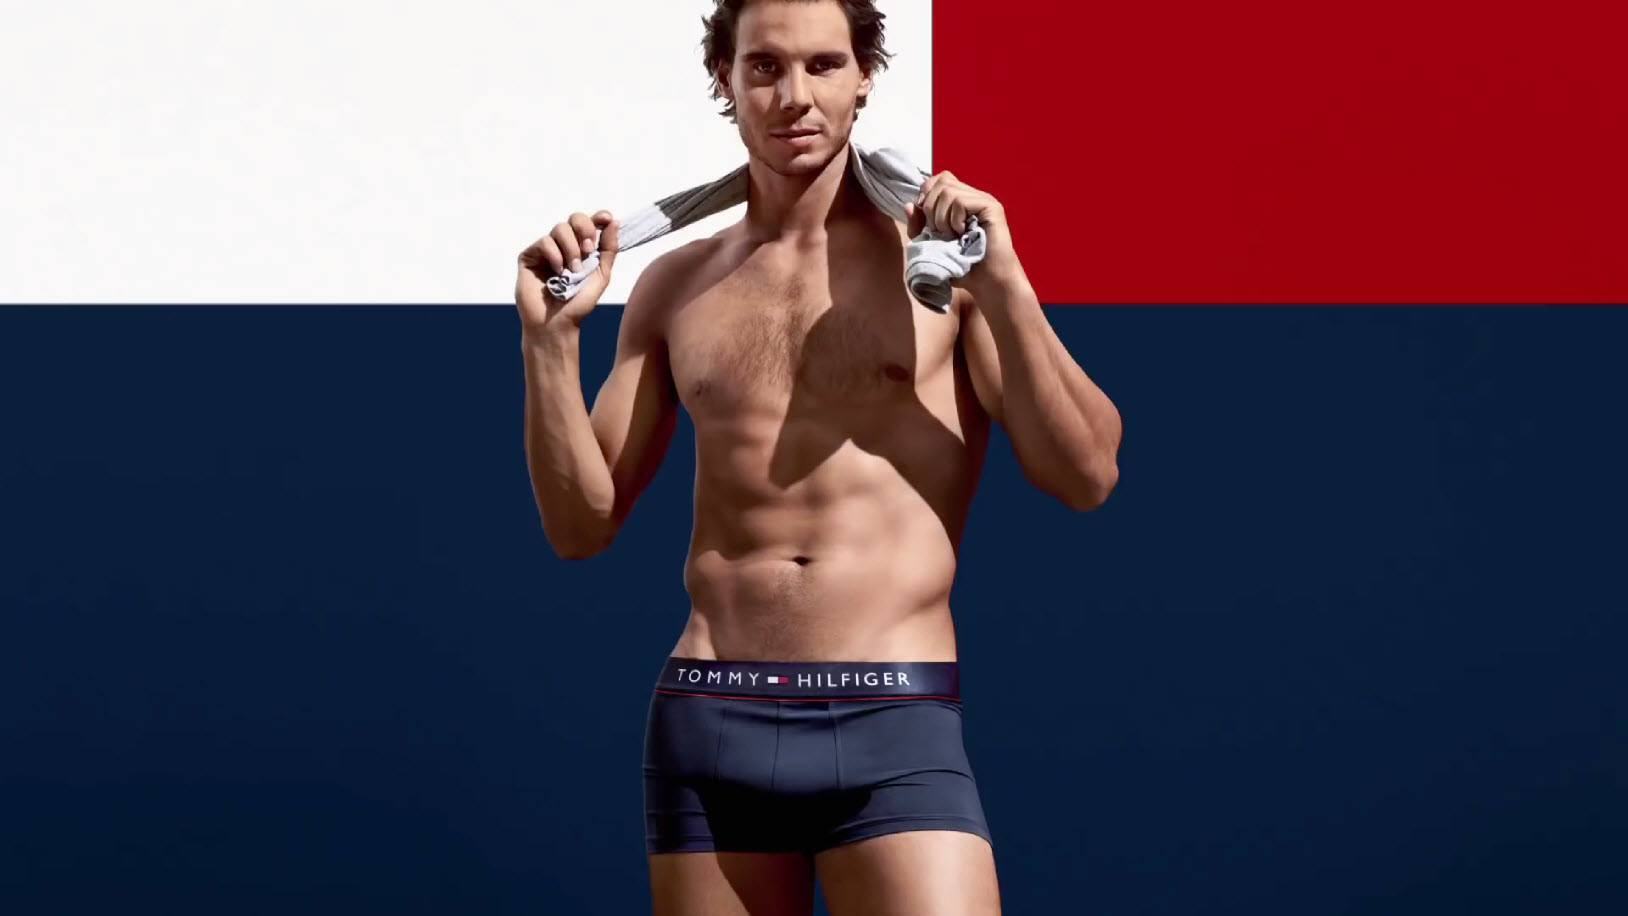 ... nadal under hilfiger bulge tennis 2015 - Movie TV Tech Geeks News